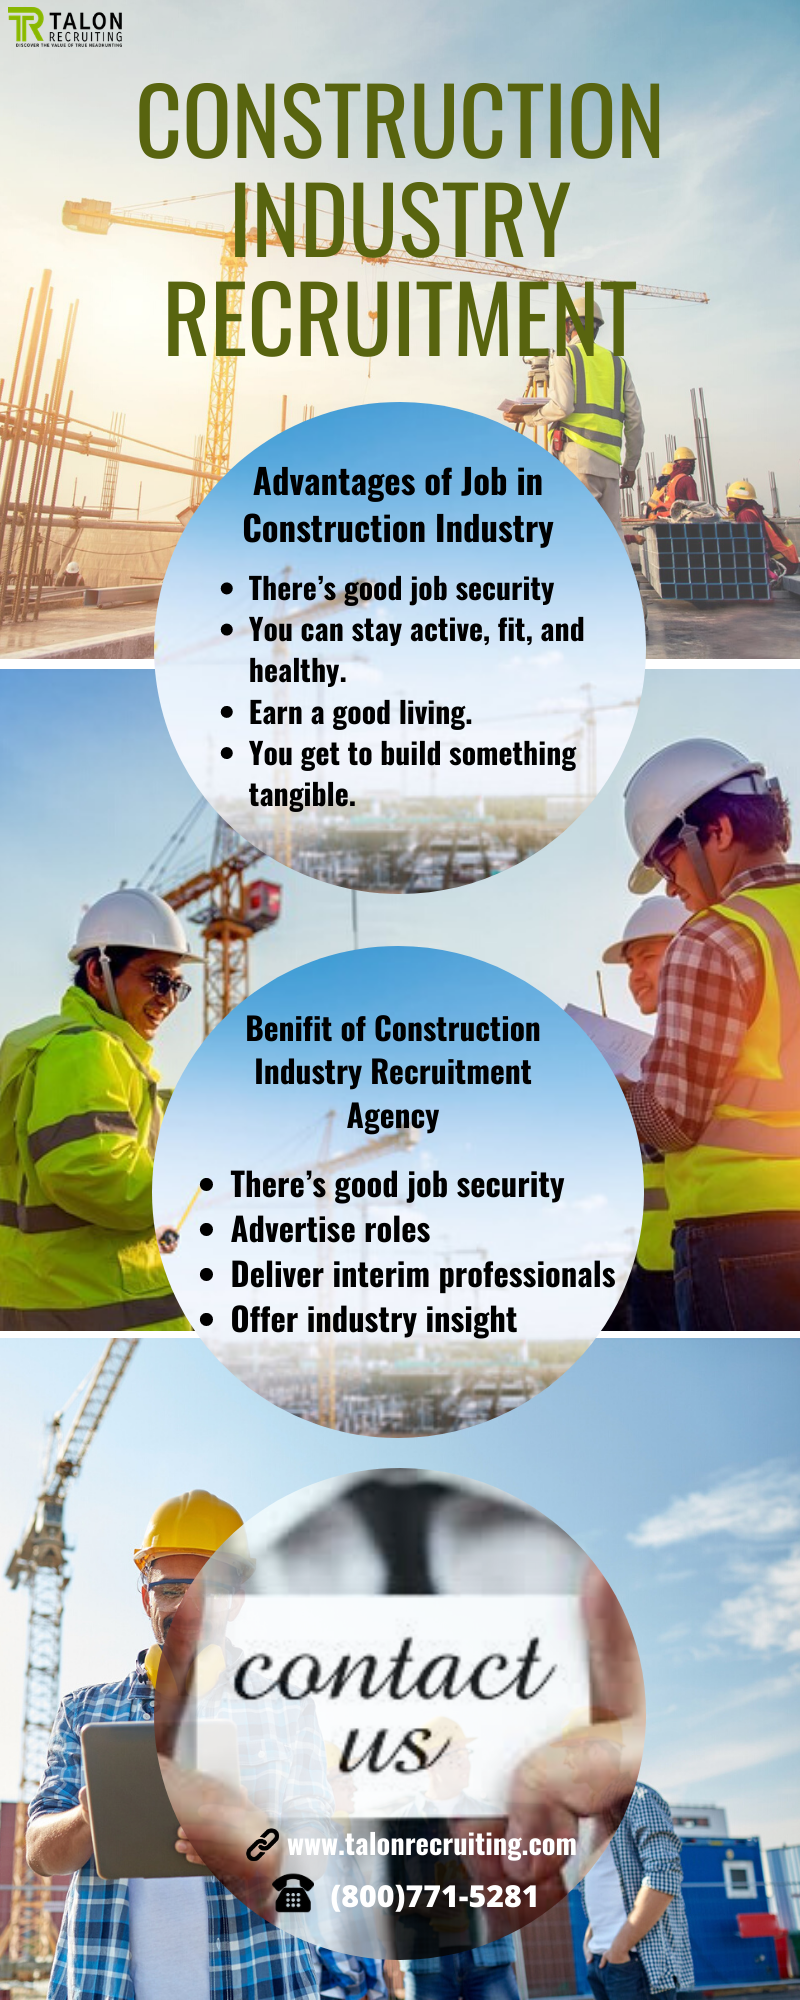 Top Construction Recruitment Agency In Canada In 2021 Recruitment Agencies Recruitment Job Security